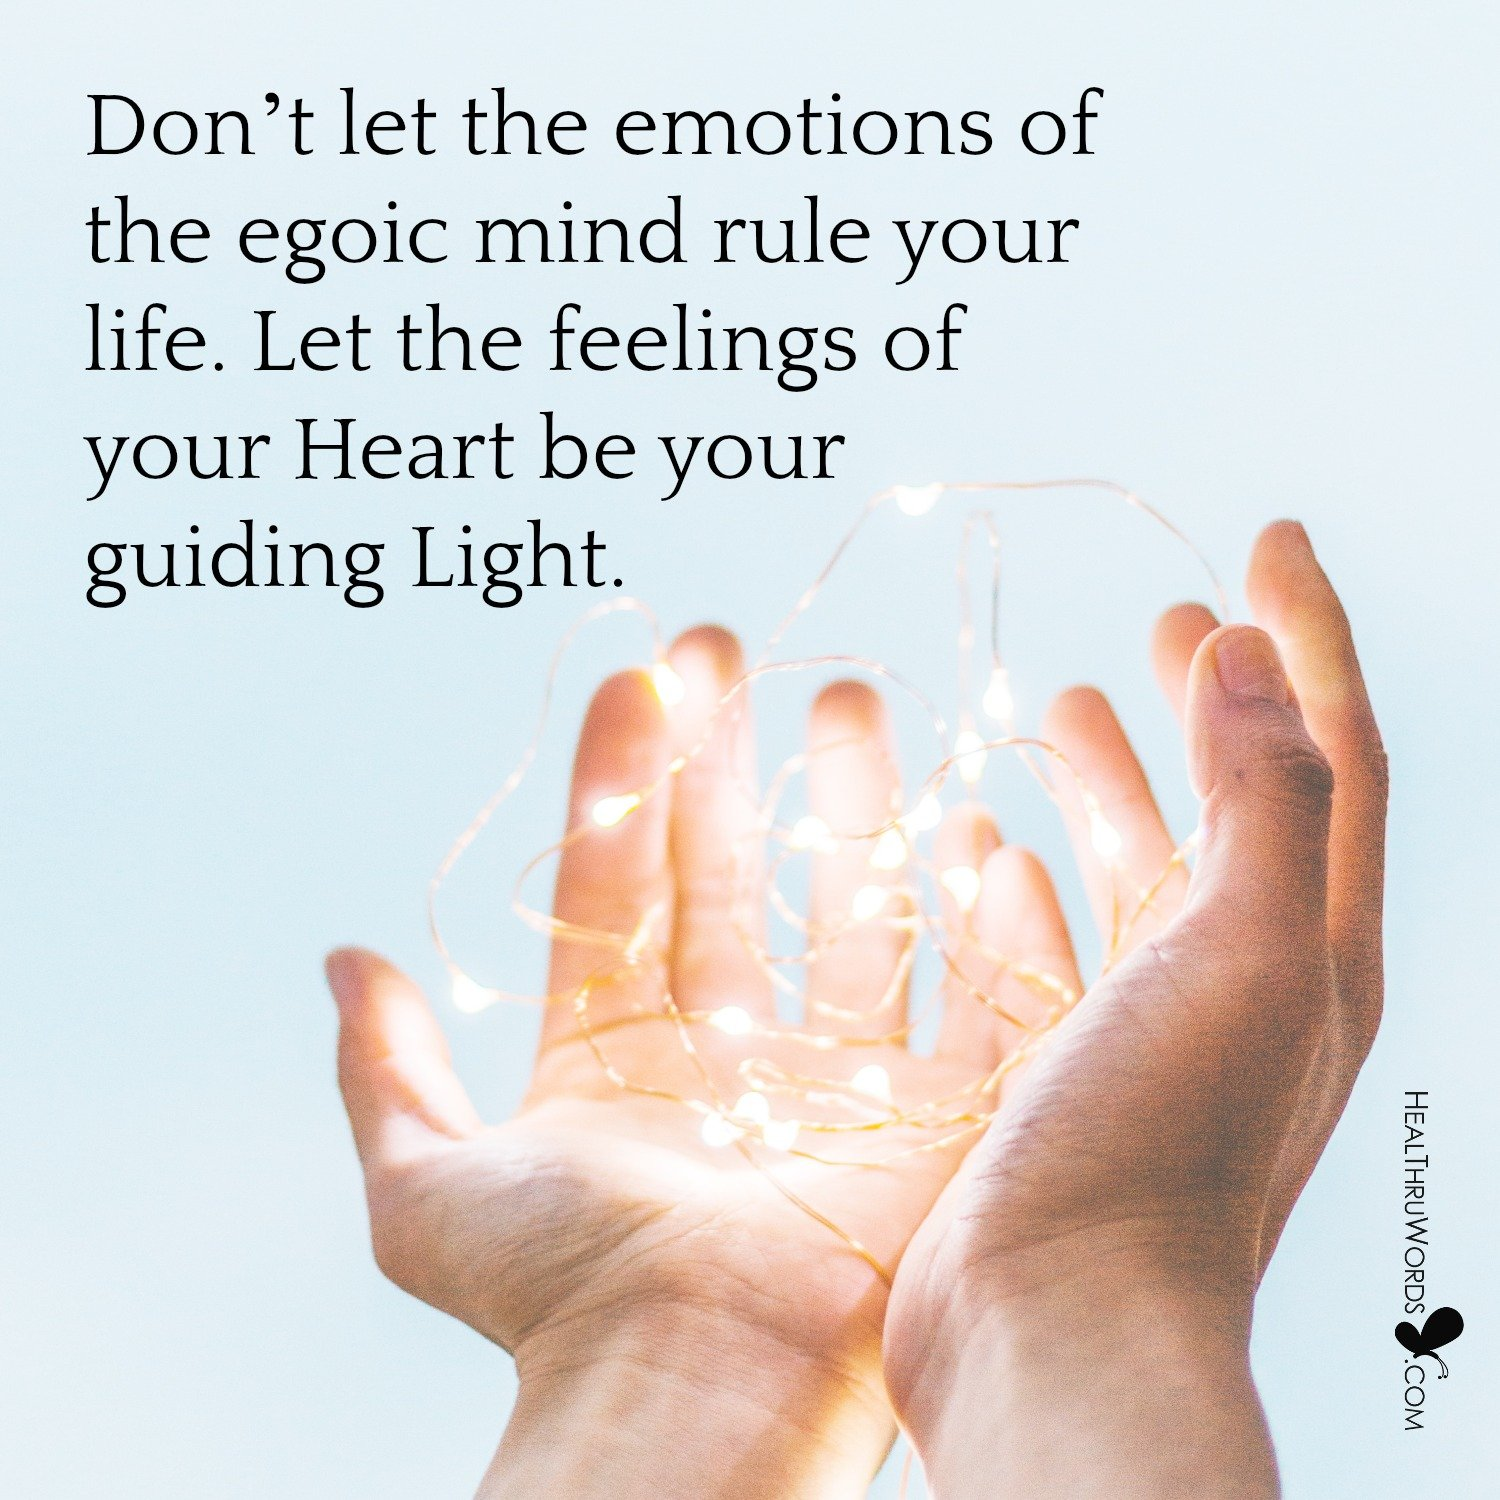 Inspirational Image: Feelings vs Emotions